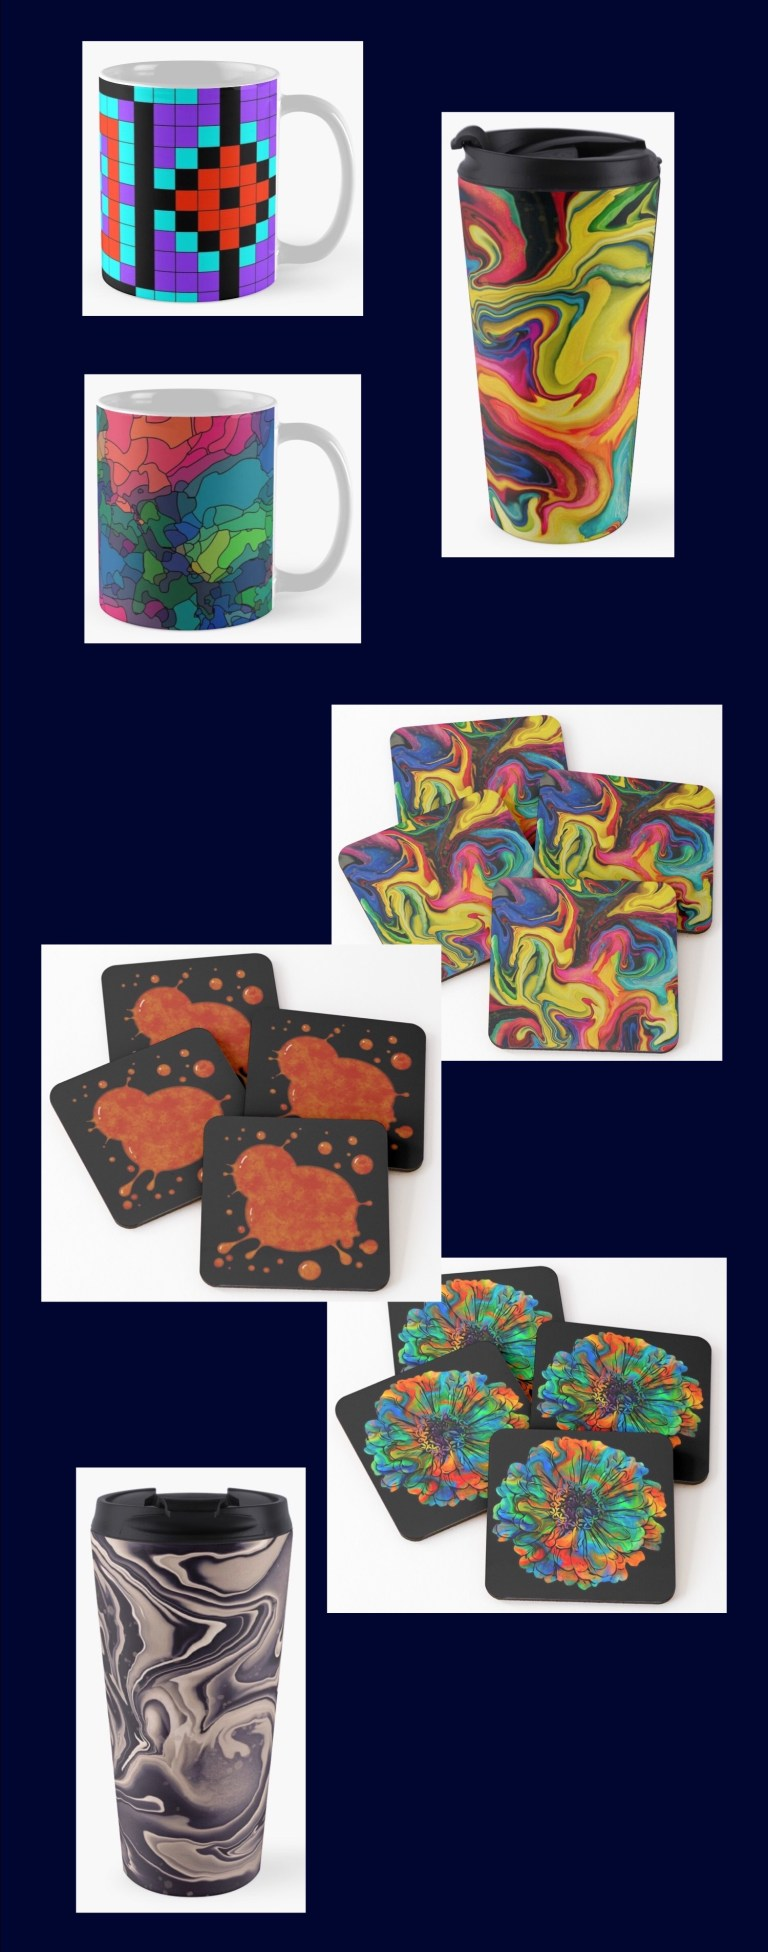 Mugs, travel cups, and coasters, each one available in up to 25 of my designs.